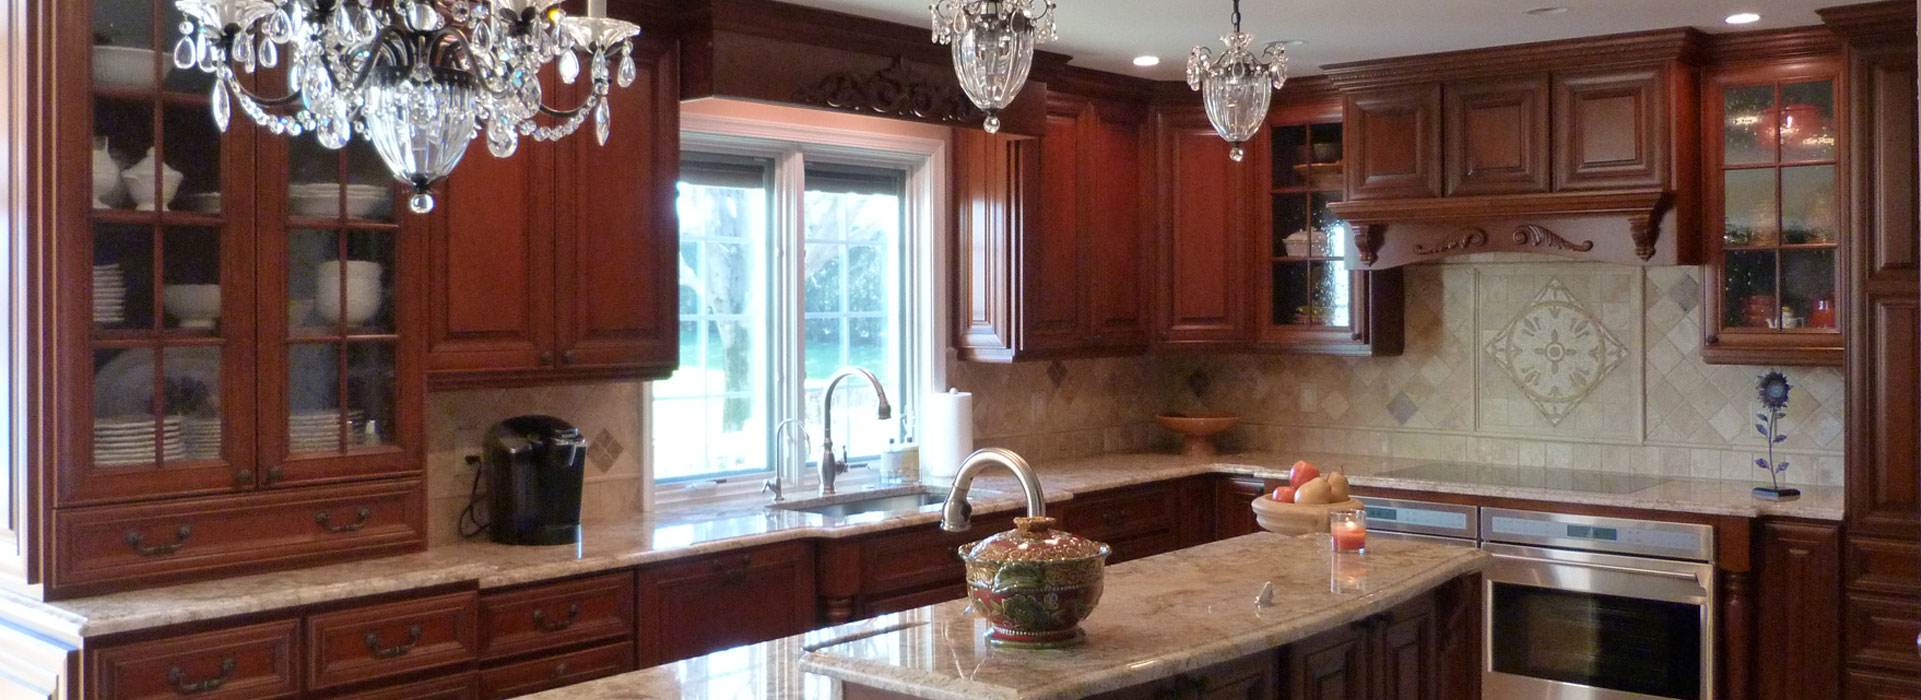 Cardinal Wood Cabinet Fronts Serving Pennsylvania New Jersey And Delaware For Over 35 Years